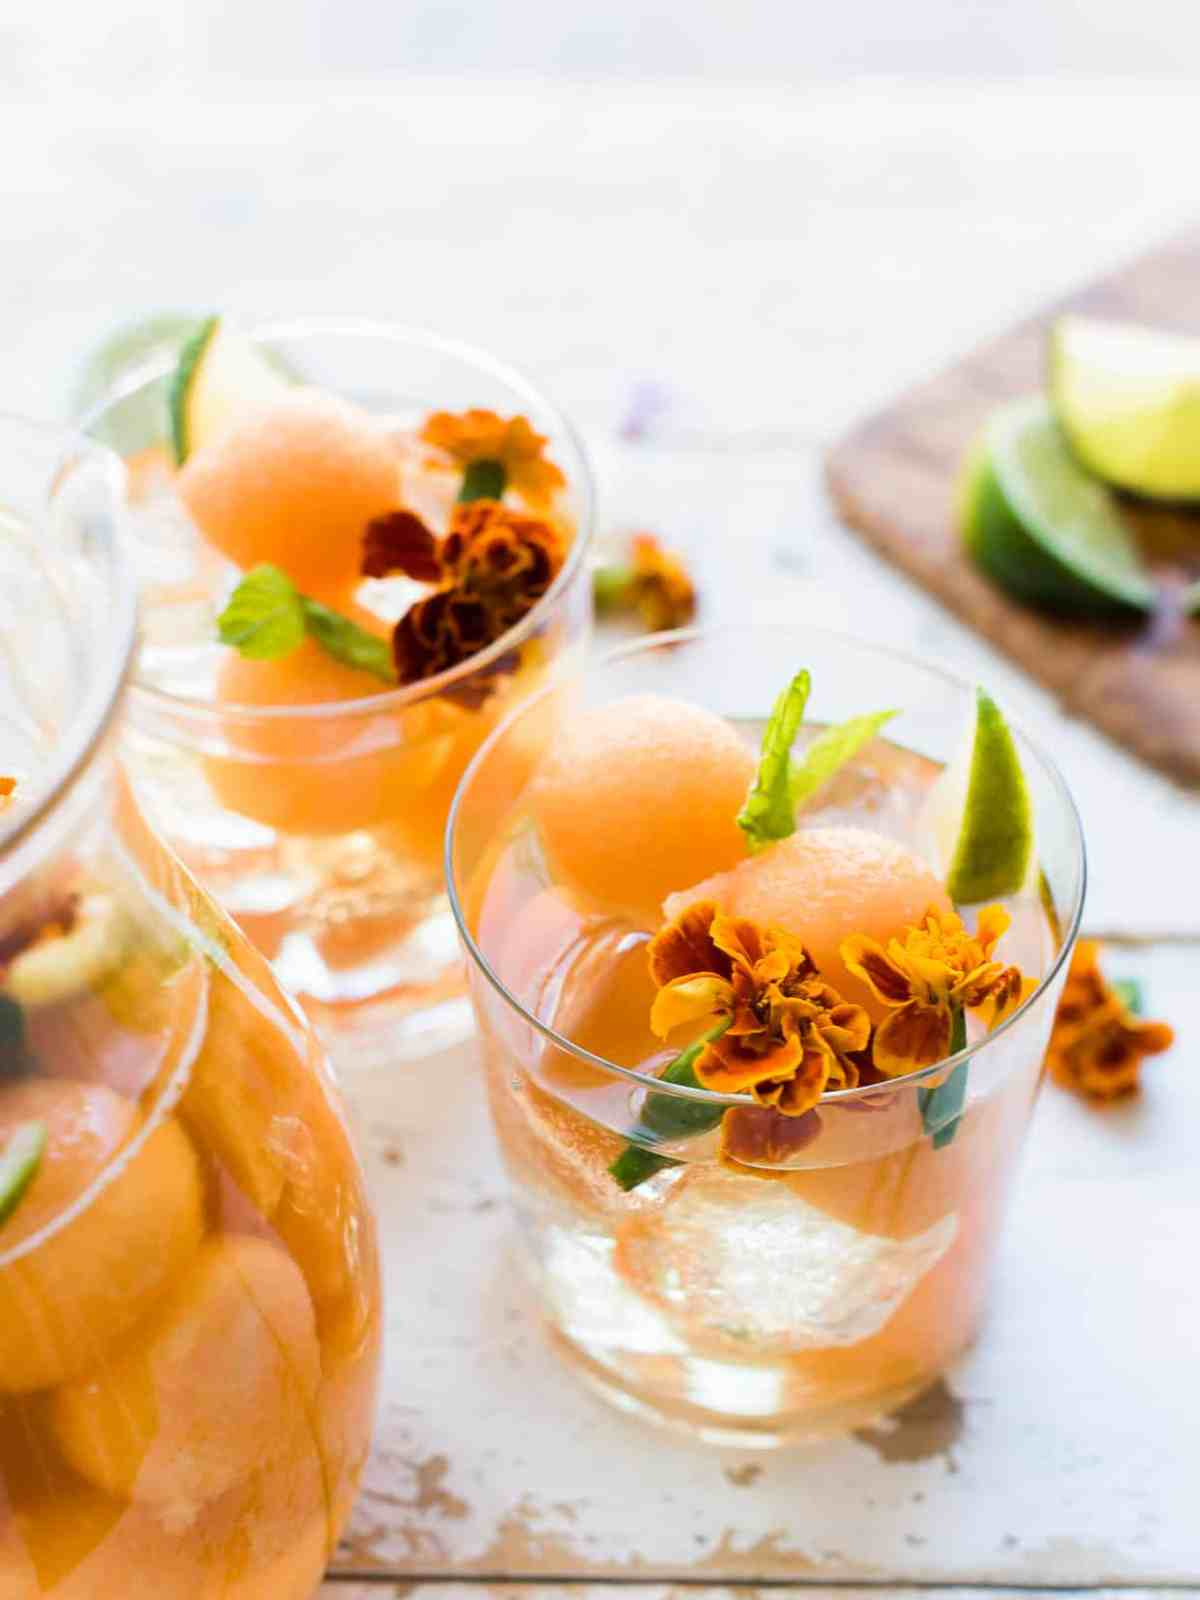 Glasses of Ginger Cantaloupe Sangria garnished with mint and edible flowers